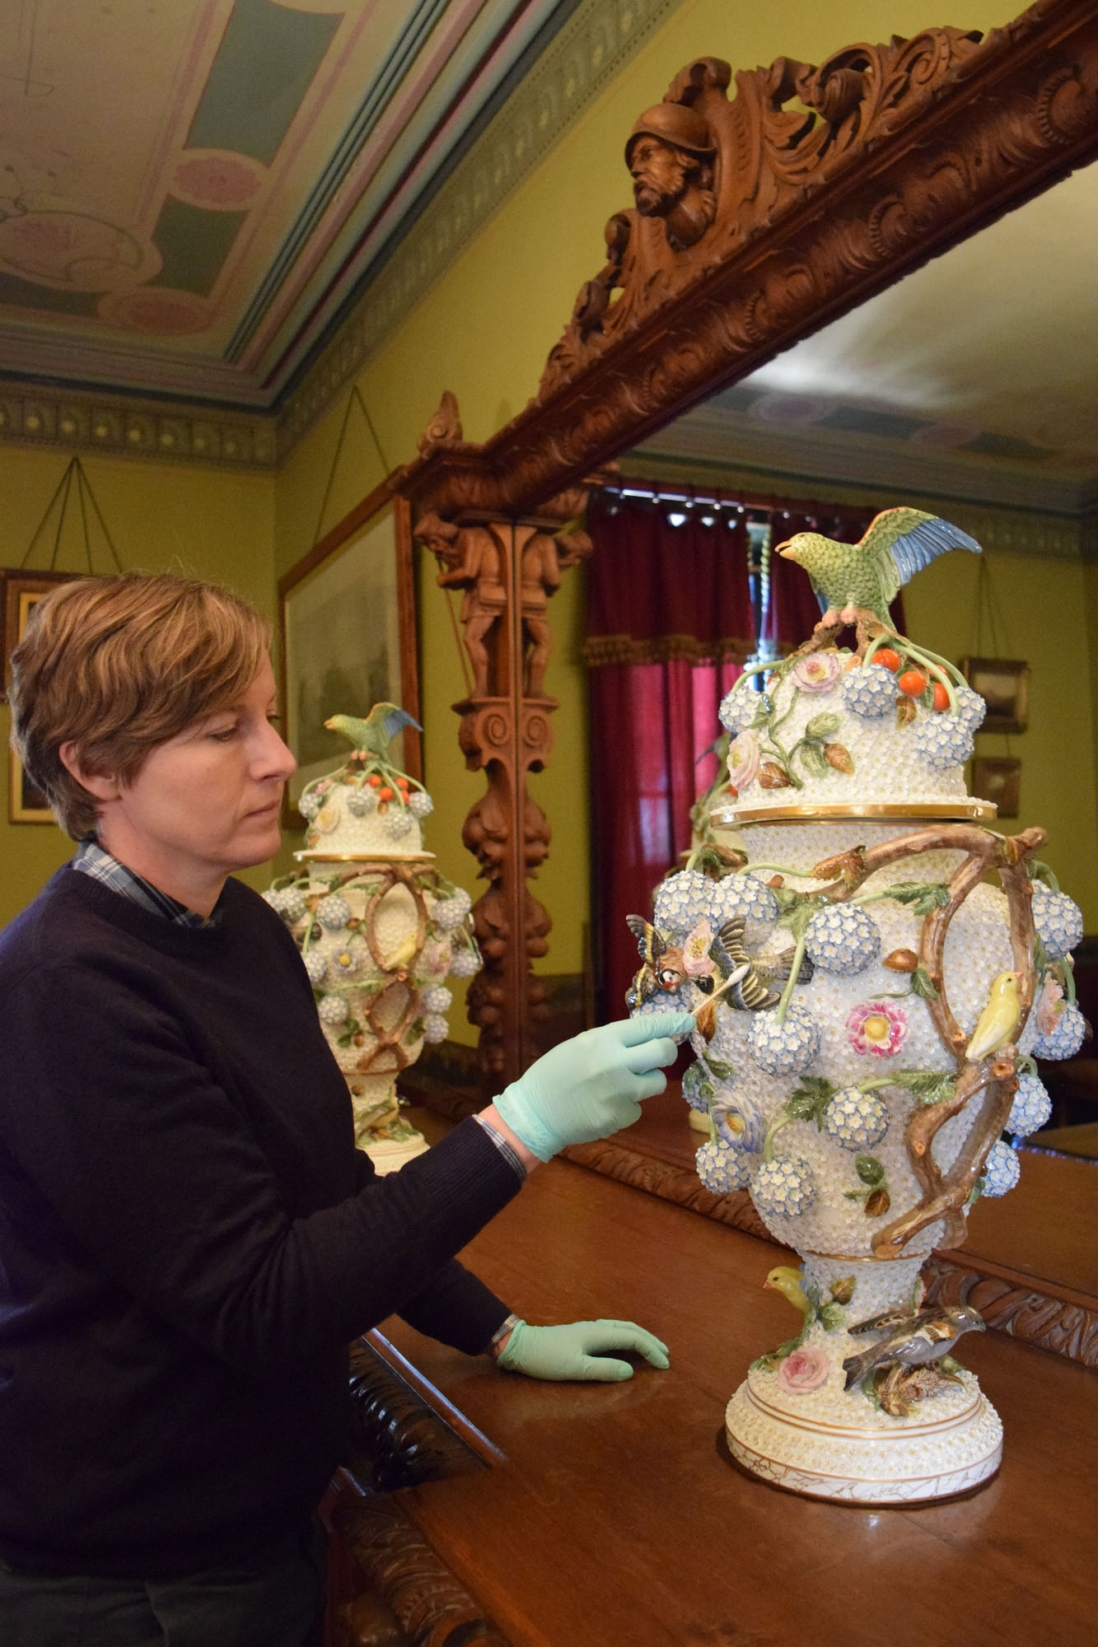 Person wearing gloves, cleaning large vase.